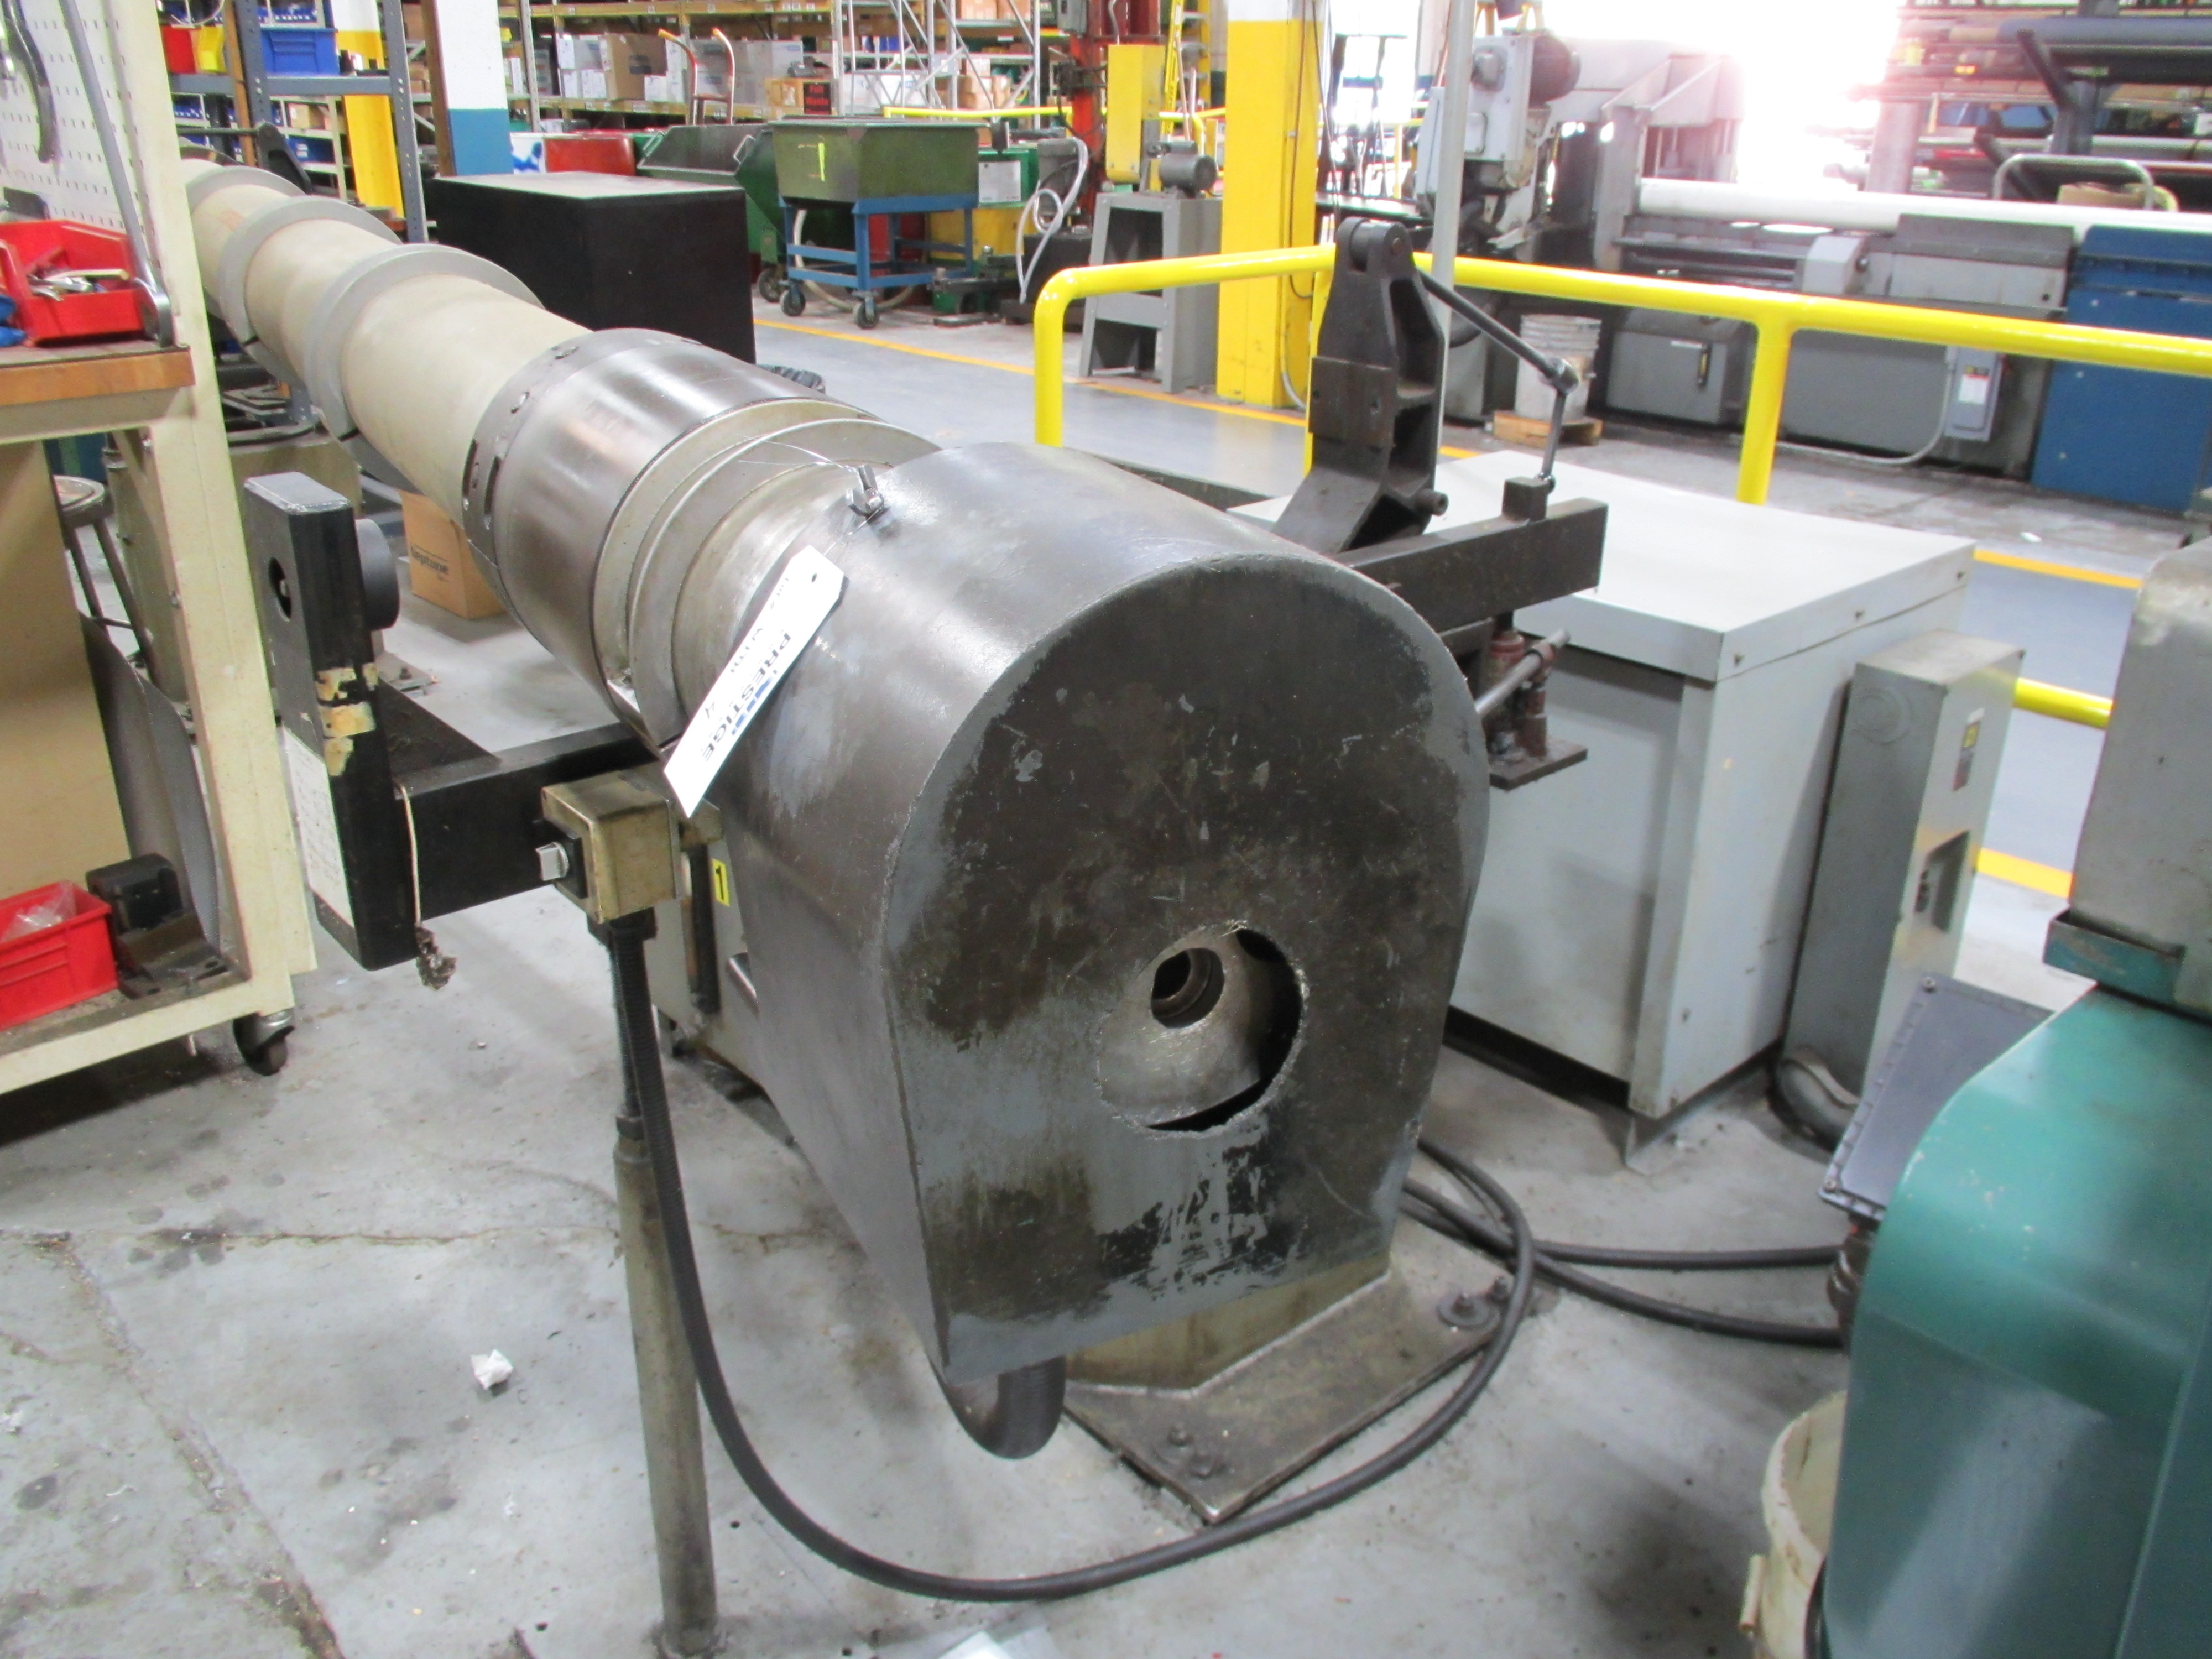 NAKAMURA TOME TW-20 6-AXIS CNC TWIN SPINDLE TURNING CENTER - Image 13 of 17